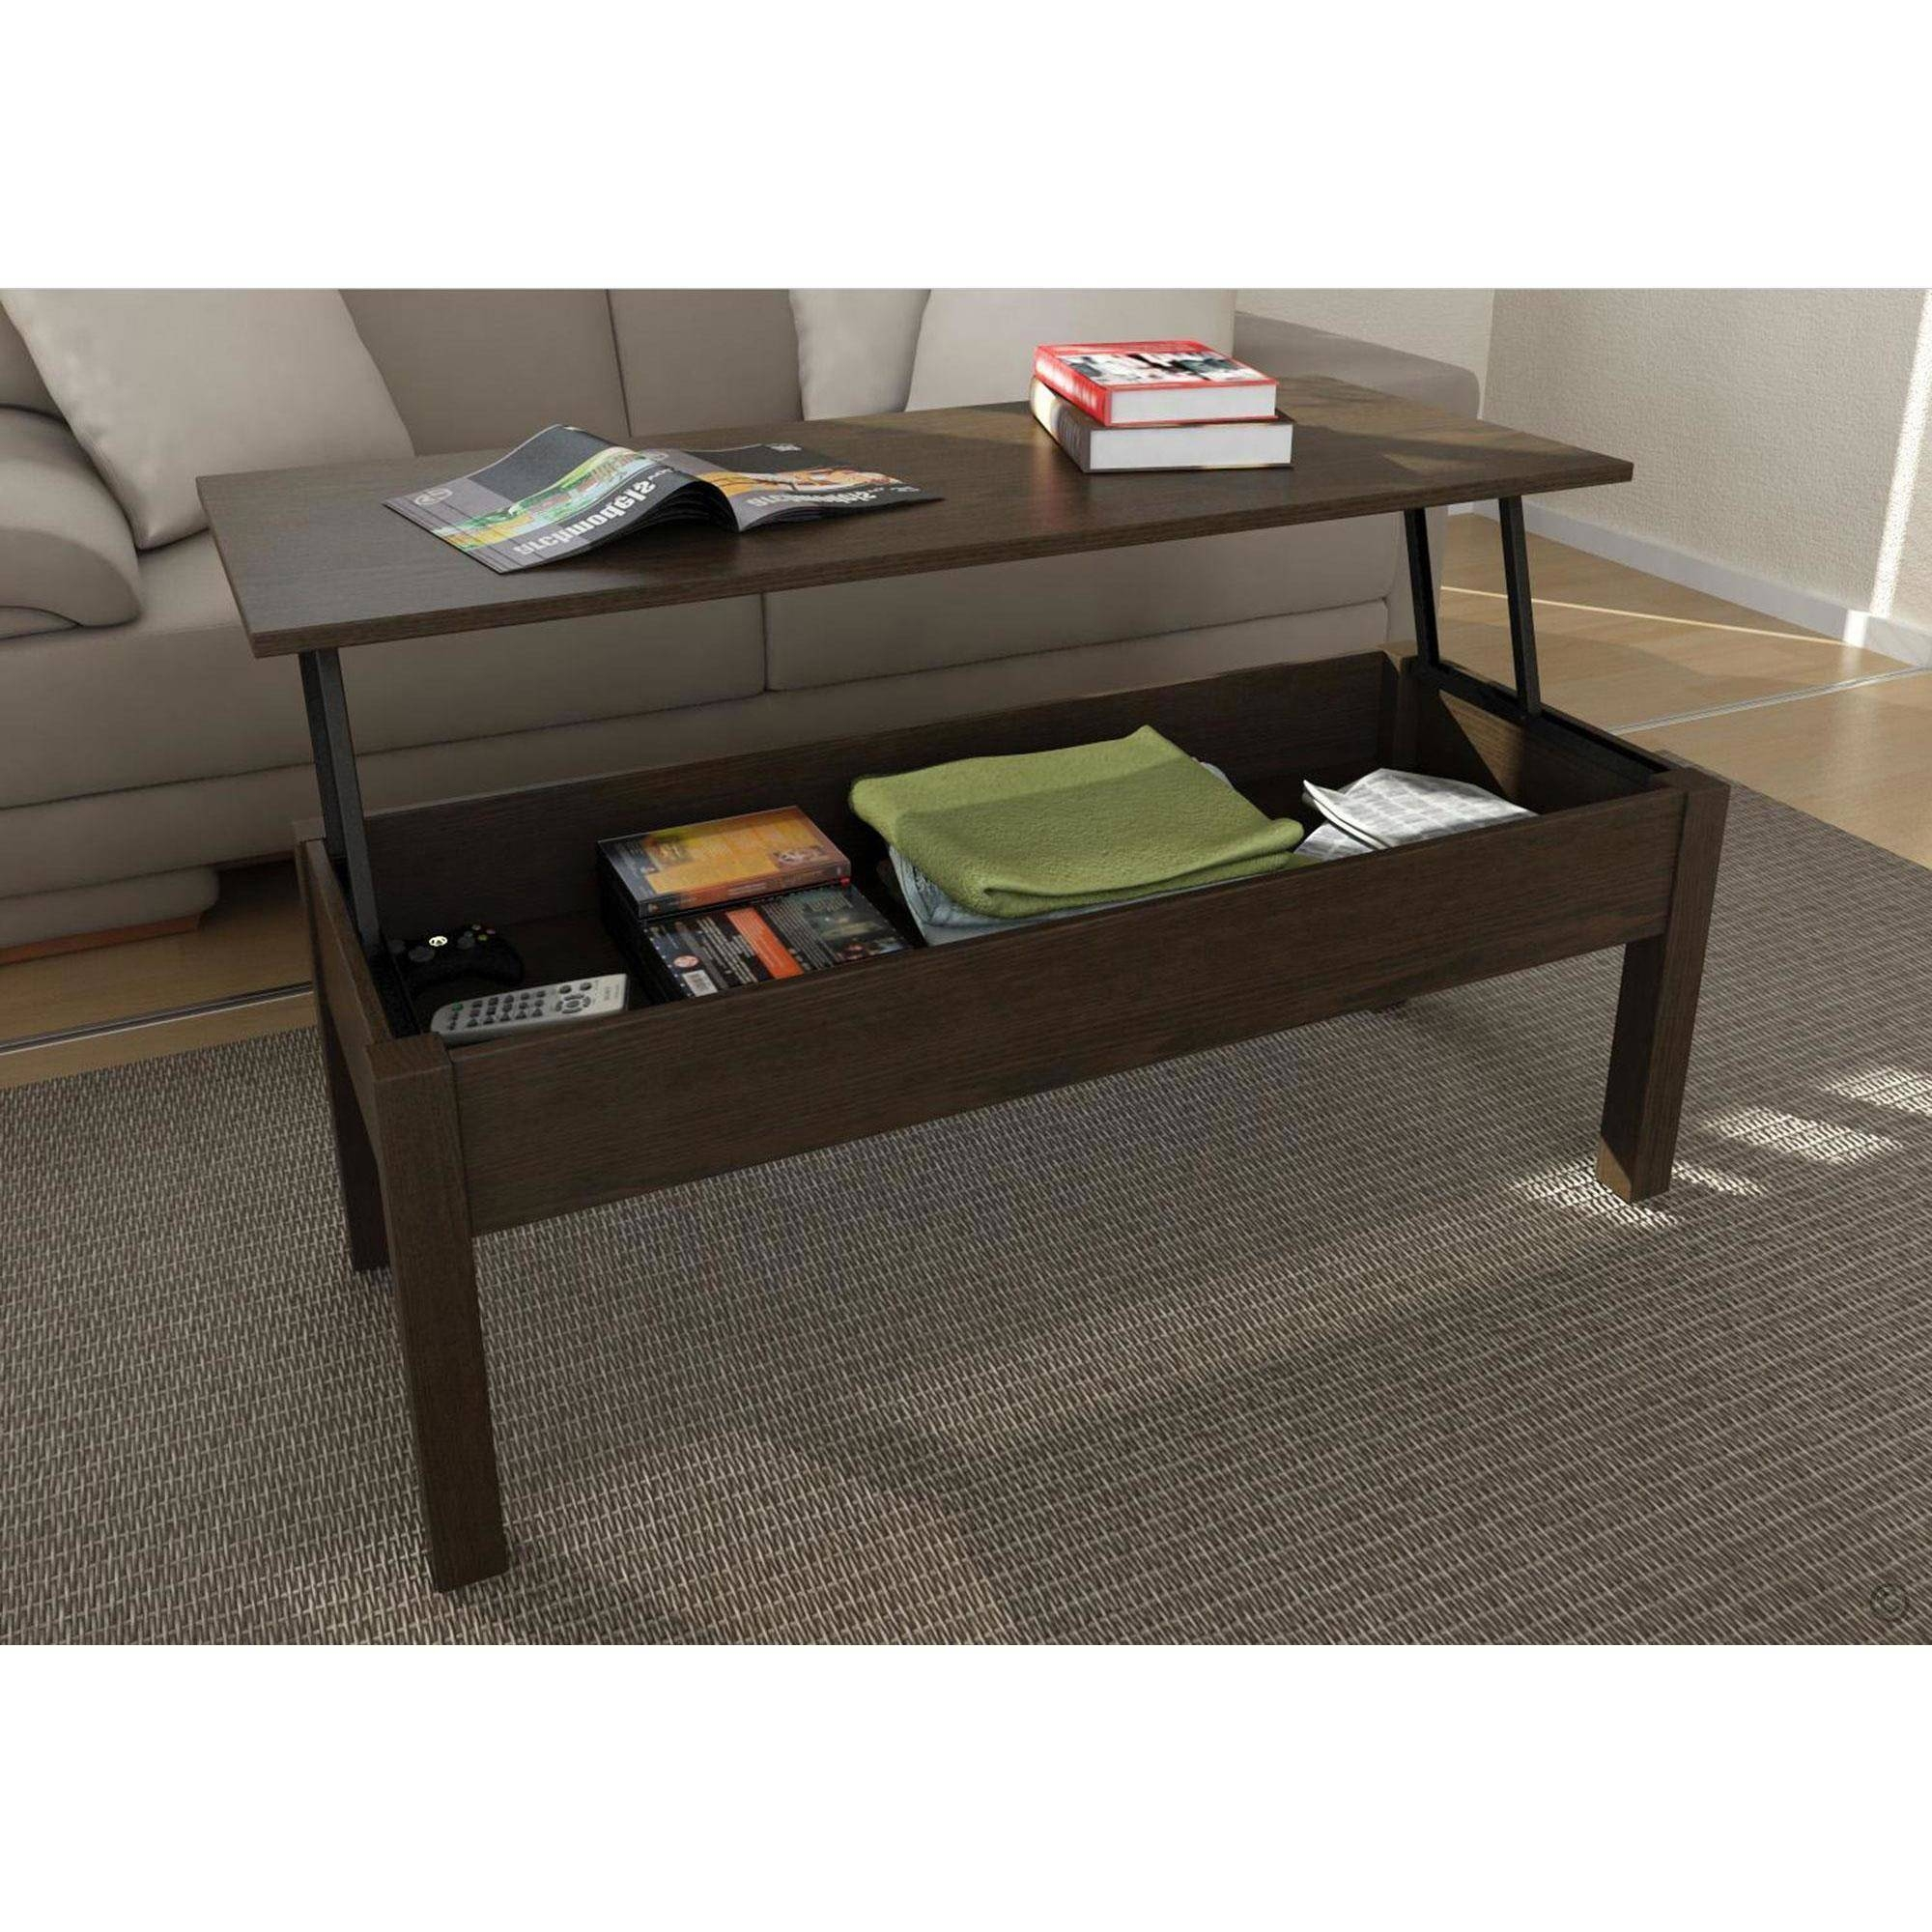 Mainstays Lift-Top Coffee Table, Multiple Colors - Walmart with regard to Lift Coffee Tables (Image 18 of 30)